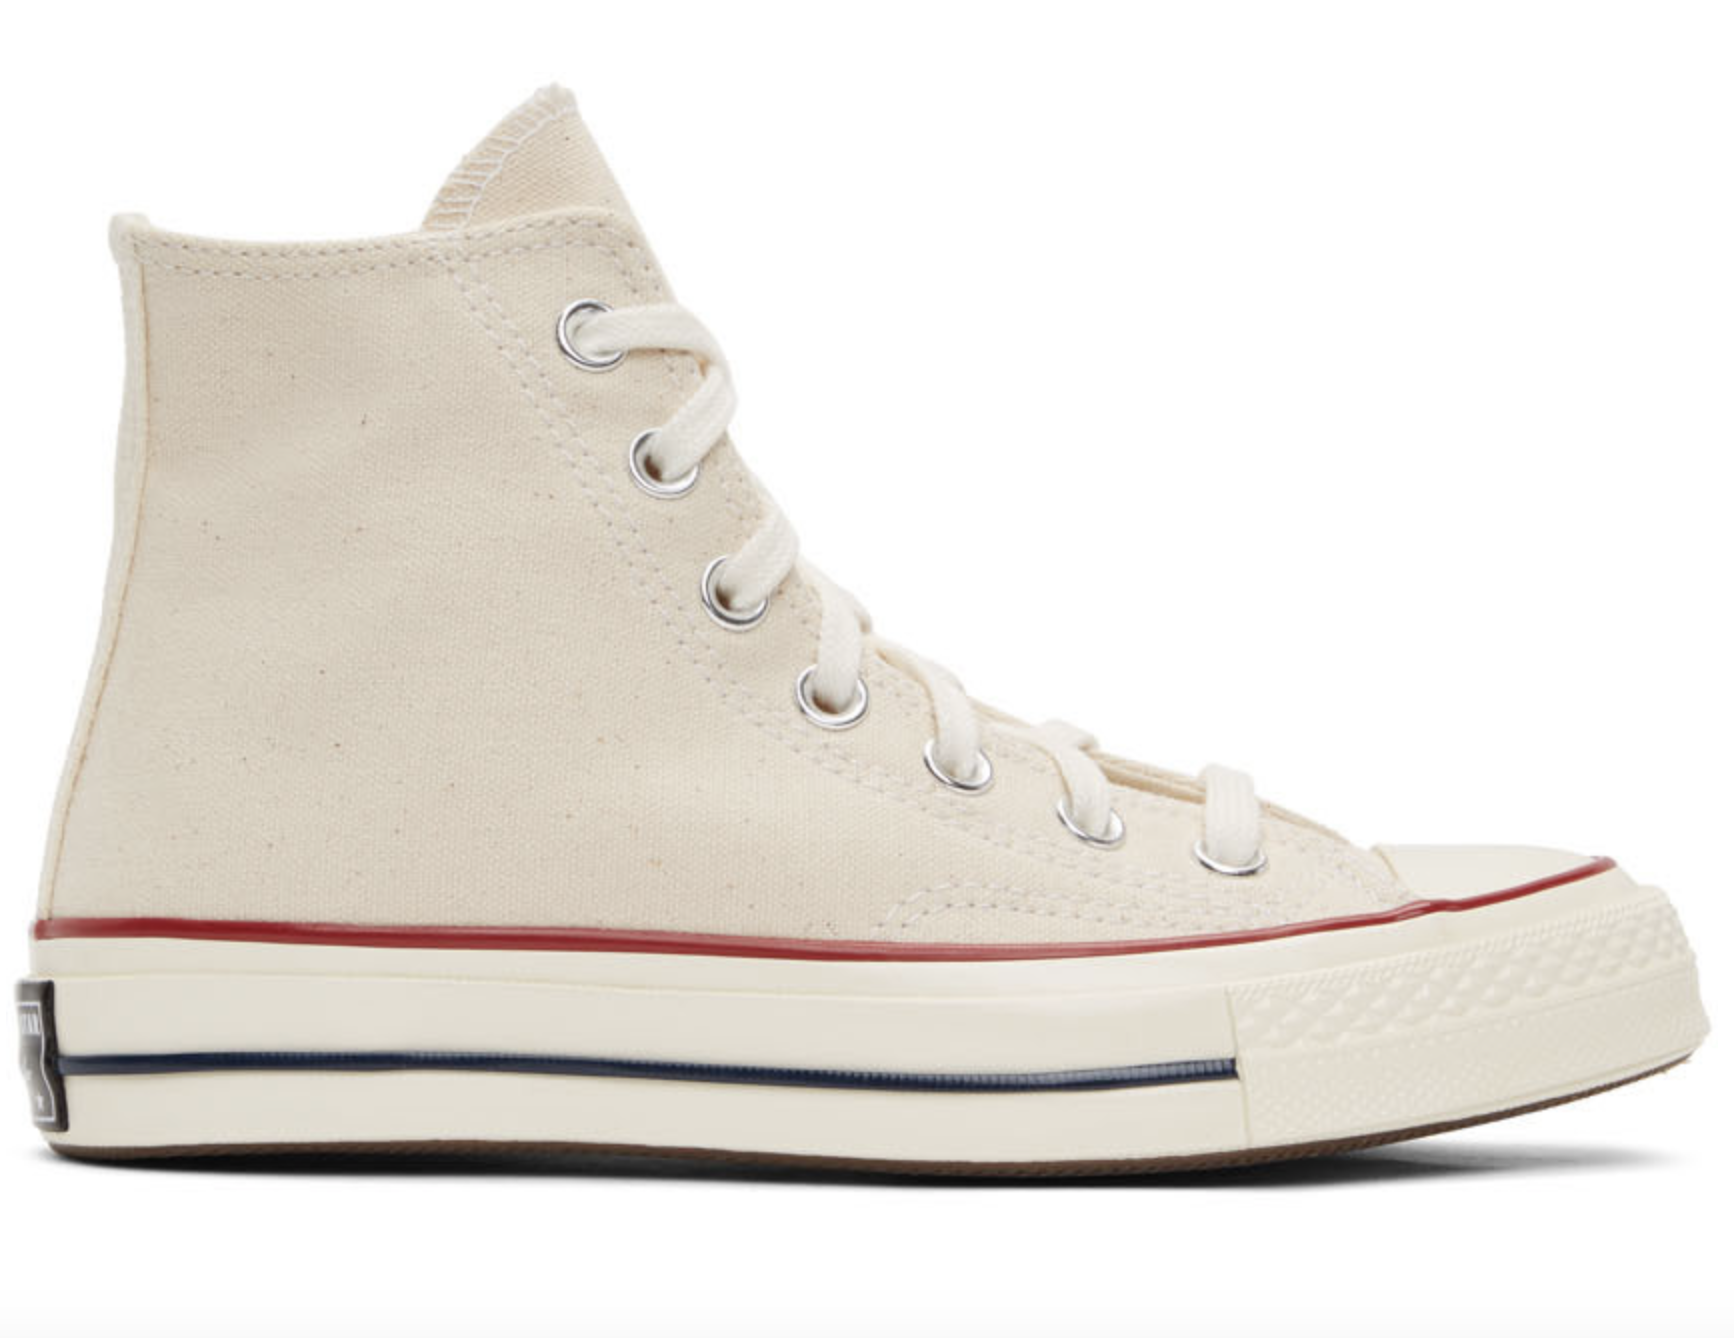 Converse, Converse Chuck Taylors, sneakers, white sneakers